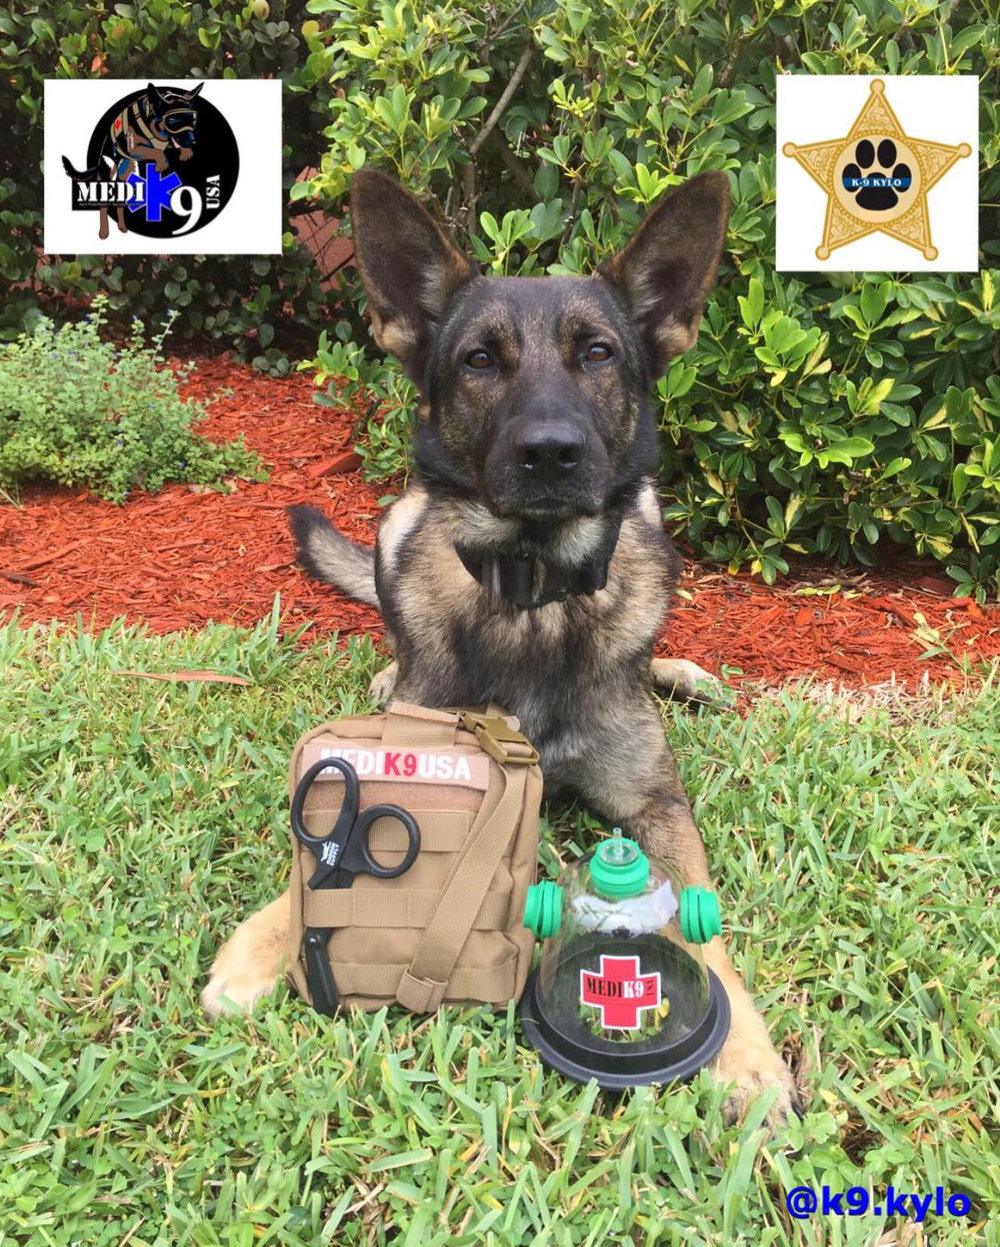 10/2/18 - K9 Kylo of the Lee County Sheriff's Office, Fl